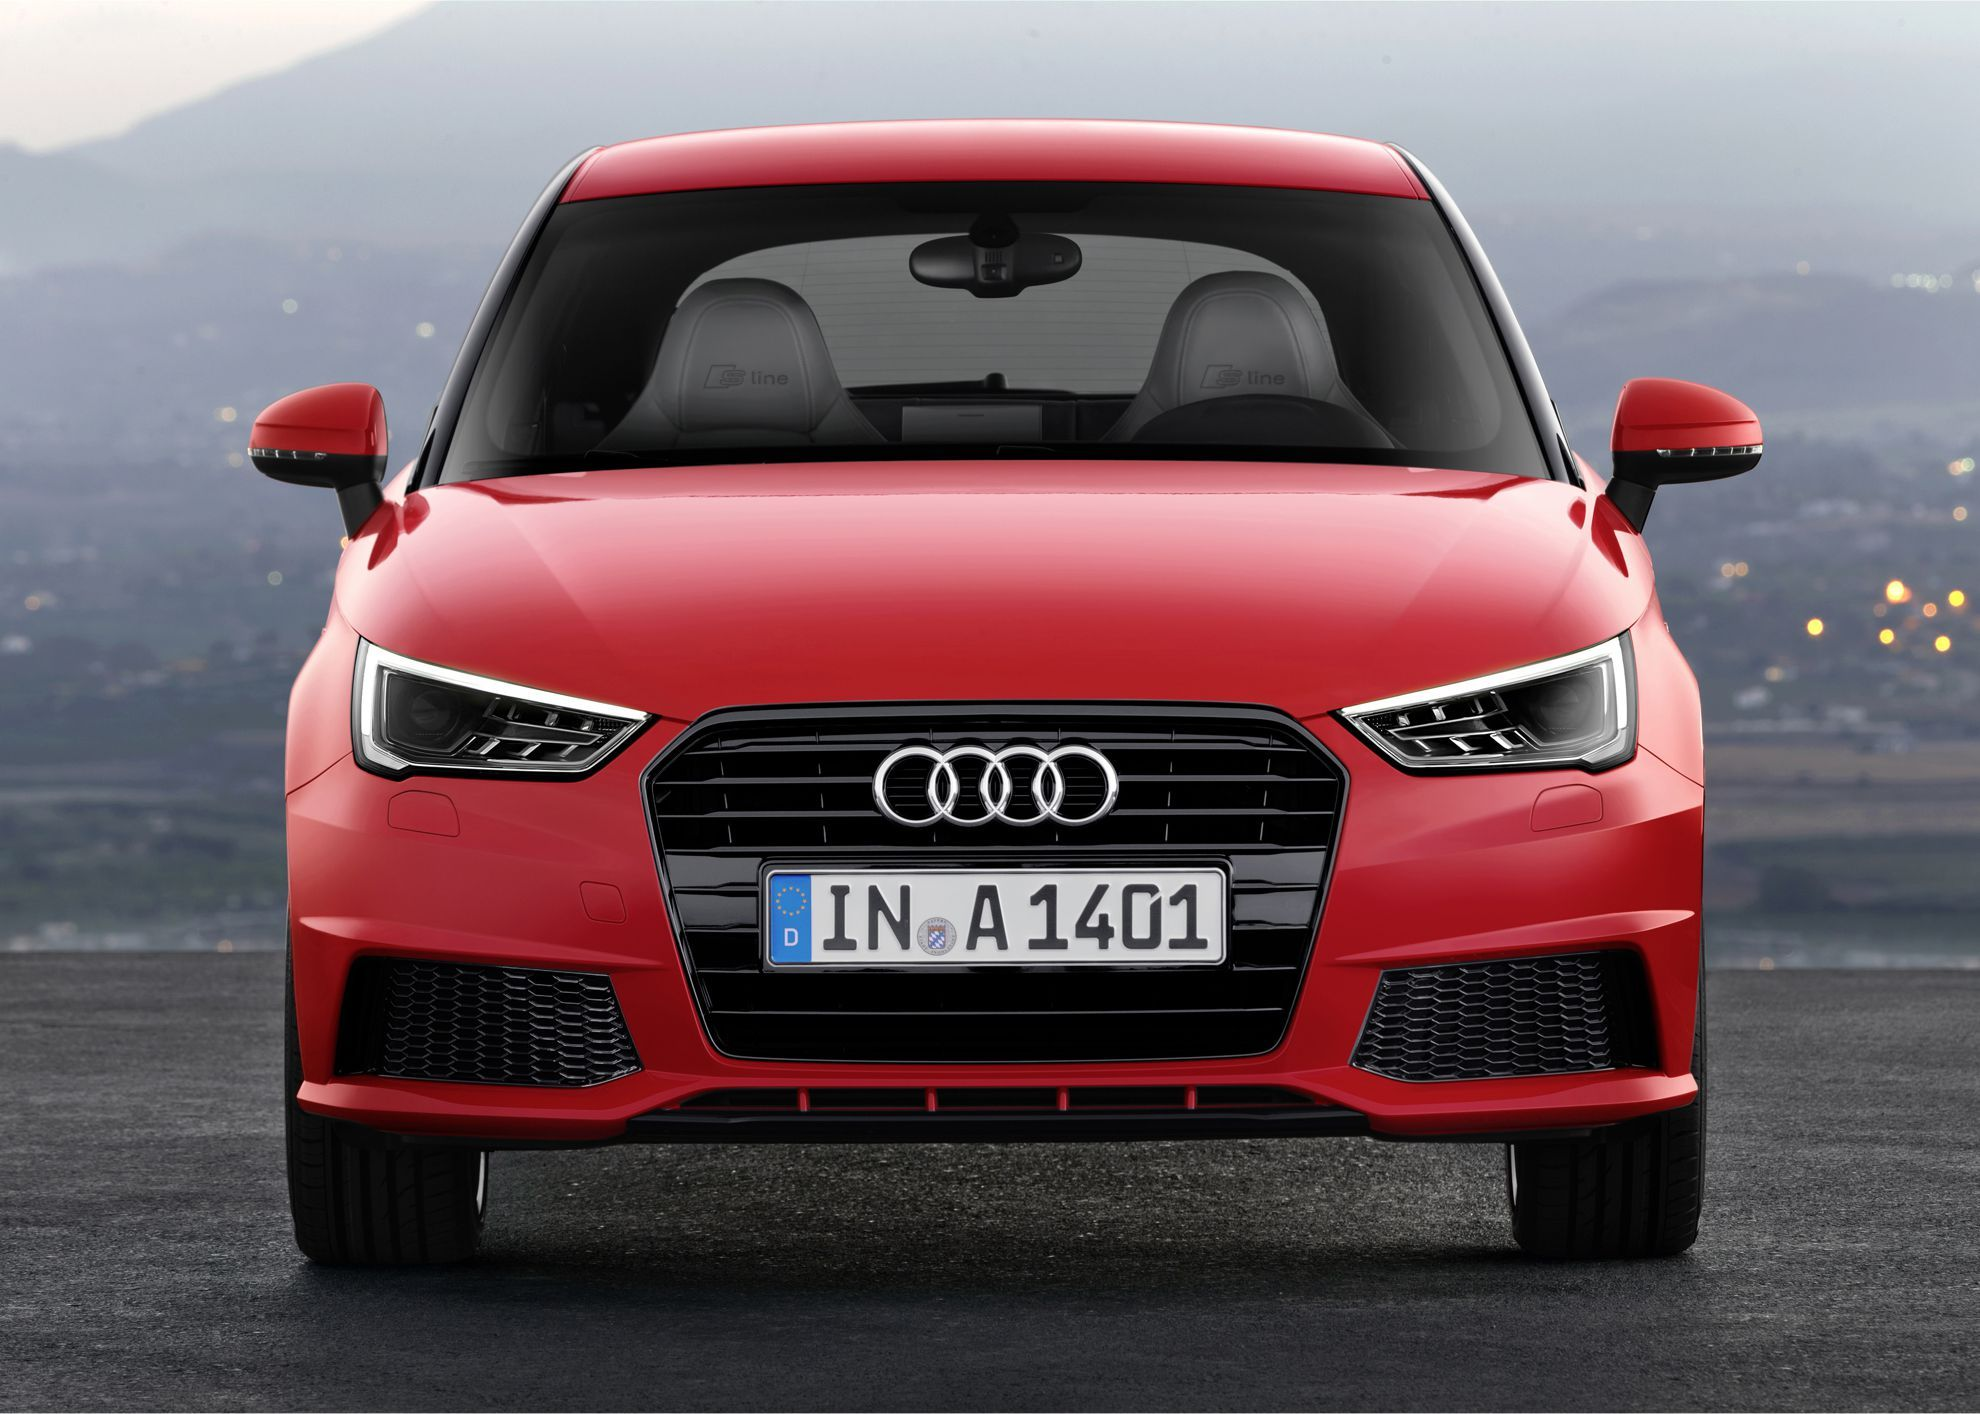 Audi A1 And Audi A1 Sportback 600 000 Cars Sold Since 2010 Audi